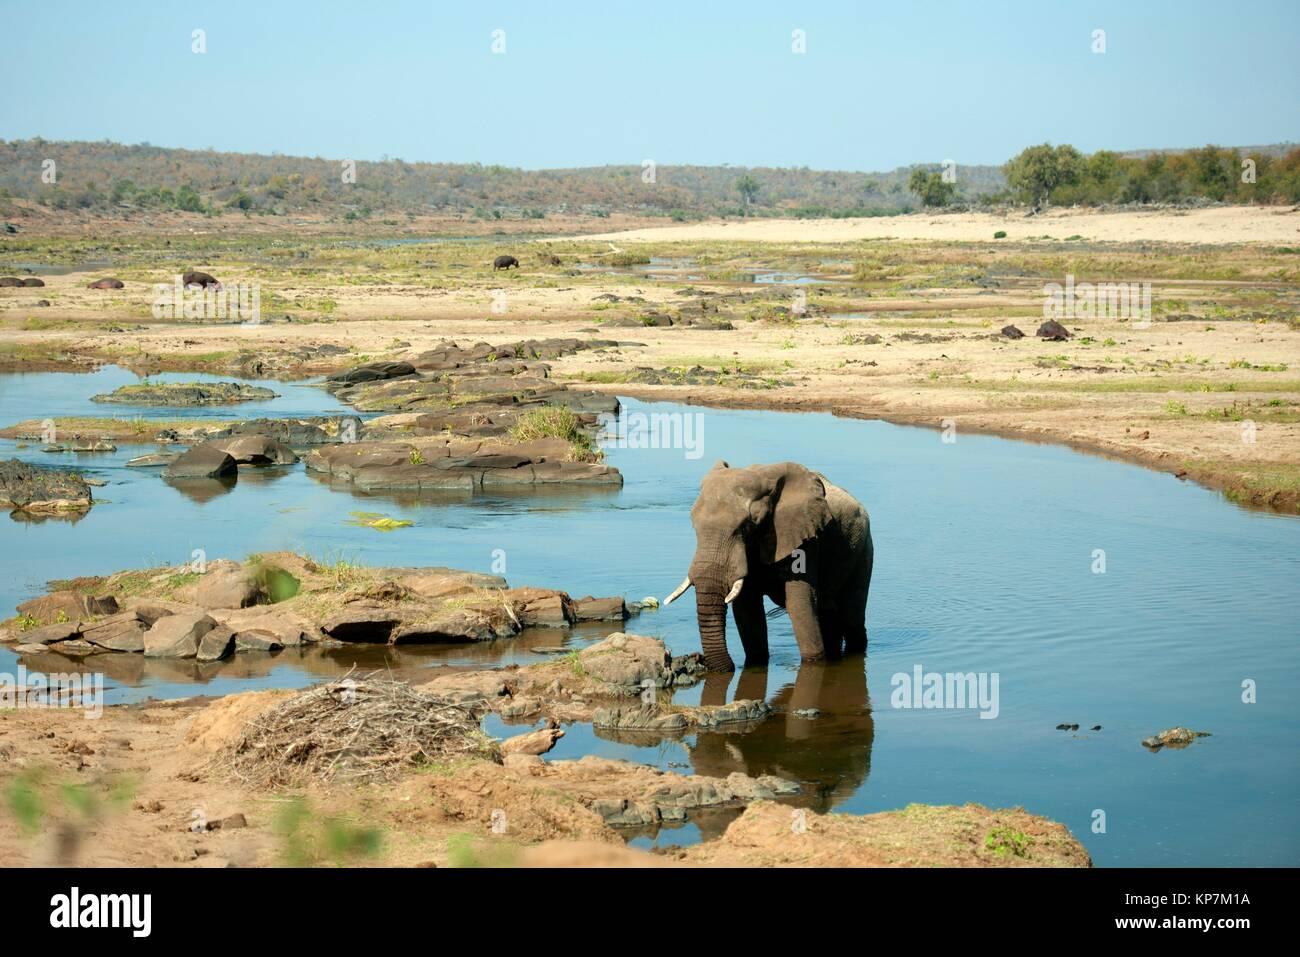 Elephant (Loxodonta africana) in river with Hippopotami (Hippopotamus amphibius) in background, Kruger National - Stock Image